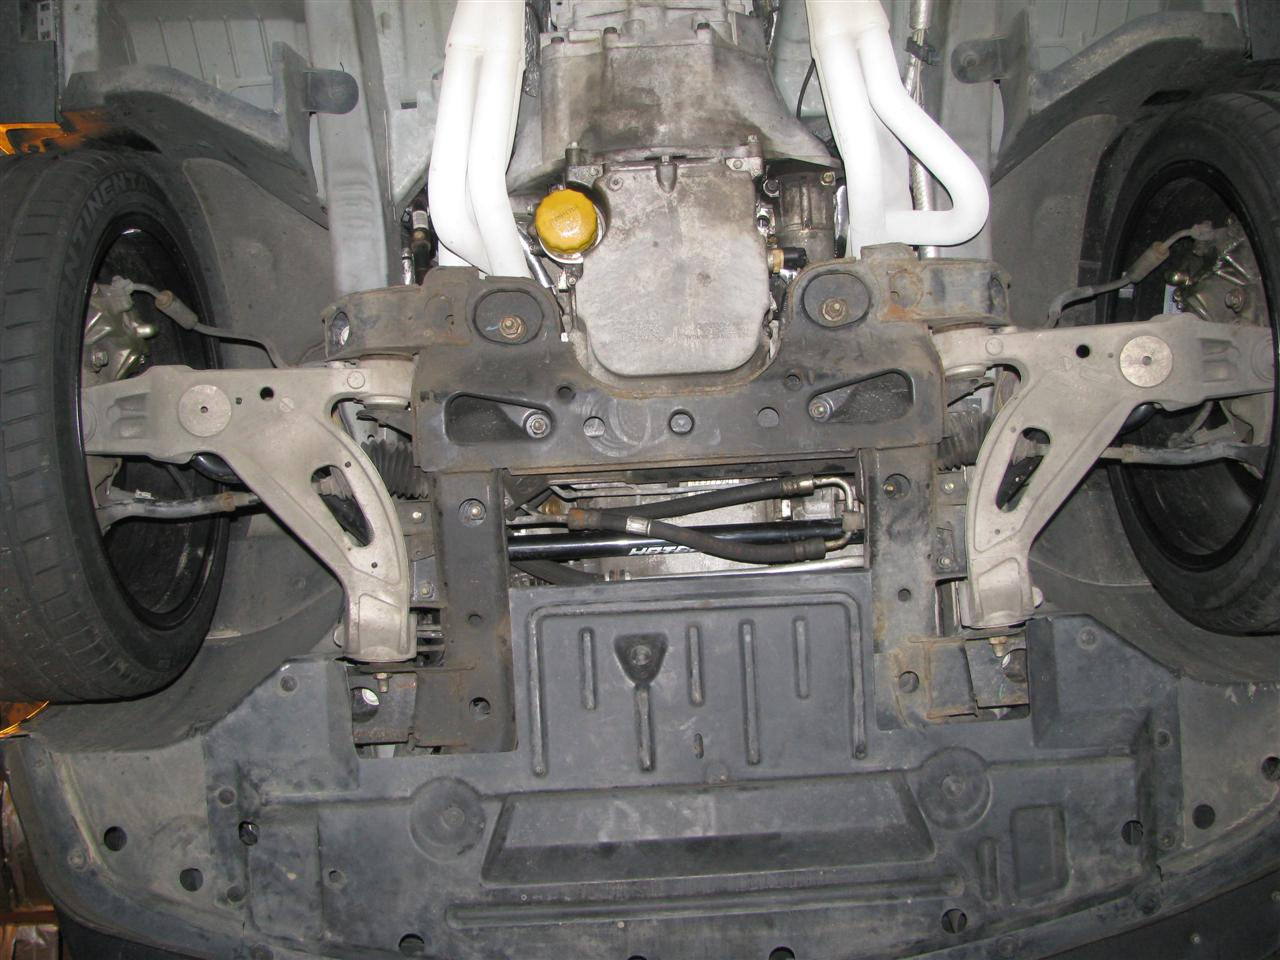 Index Of Thepno95 Pictures Cts V Pics Suspension And Chassis Underside 2012 Hyundai Elantra Fuel Filter Panorama2 1